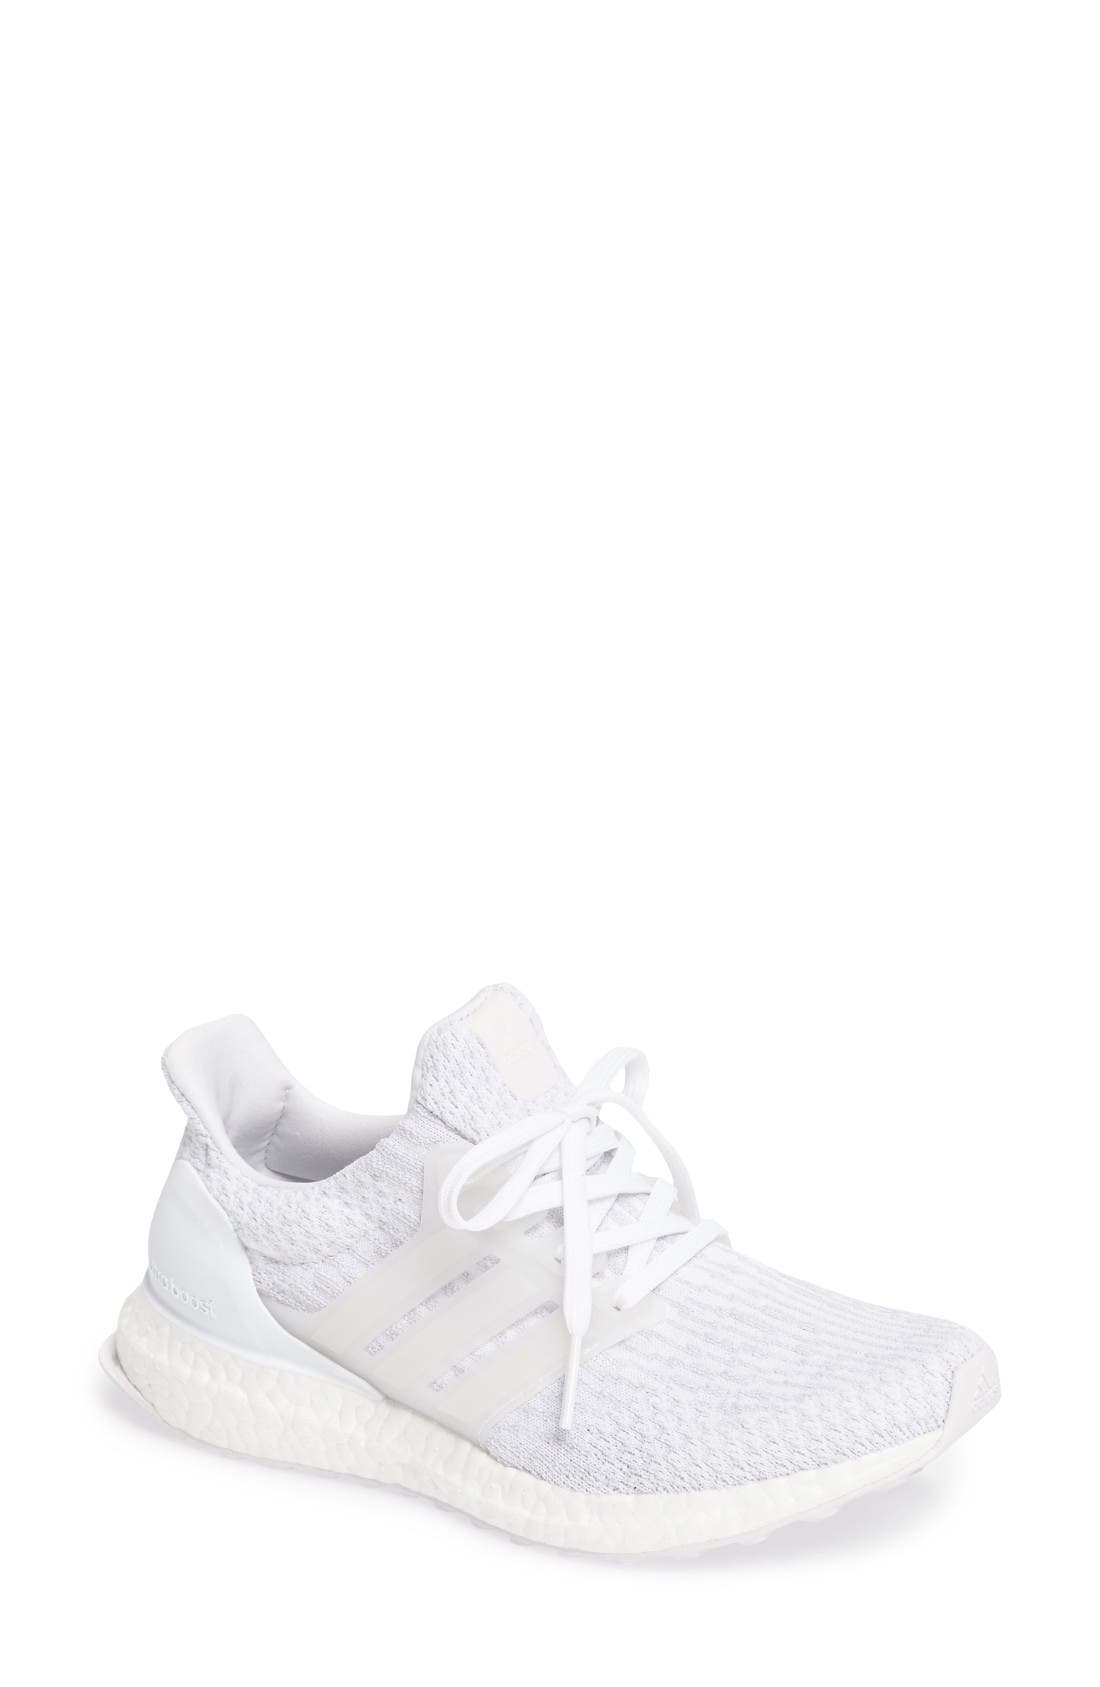 adidas \u0027UltraBoost\u0027 Running Shoe (Women)